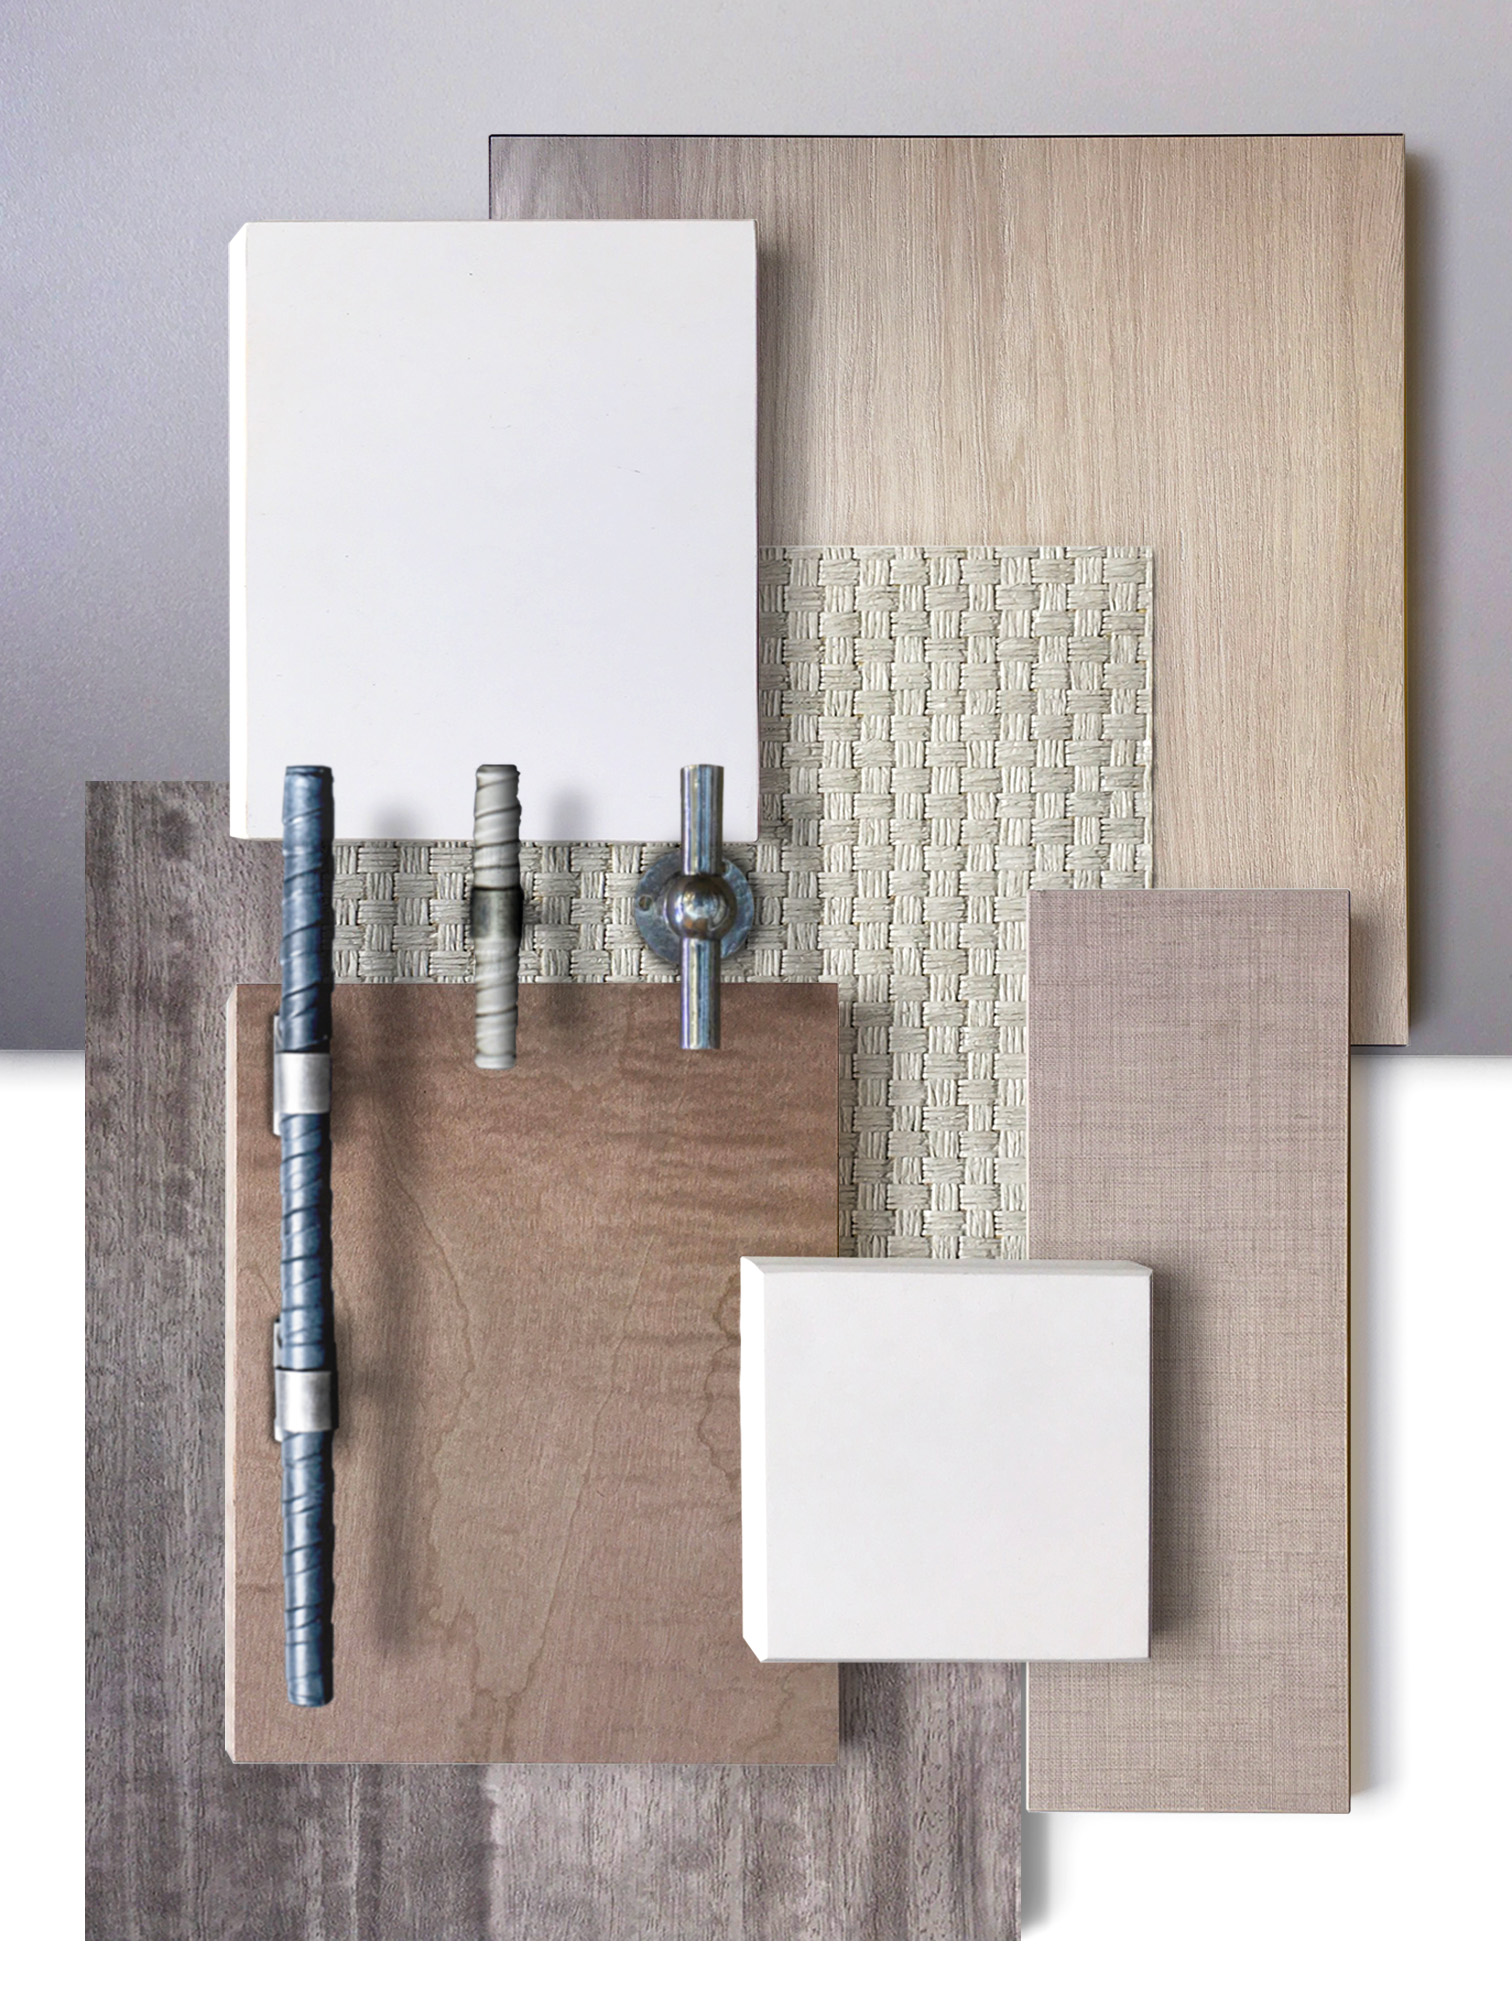 The Reflection   Sterling Silver Eucalyptus  Thibaut Sachon basket Wallpaper  Radianz Diamond White Quartz  Ochre Leather Wrapped Handles with Pewter Knuckles  Giara Chemin de Fer Cupboard Handle  Sterling Silver Quilted Maple  Elm White Wood Laminate